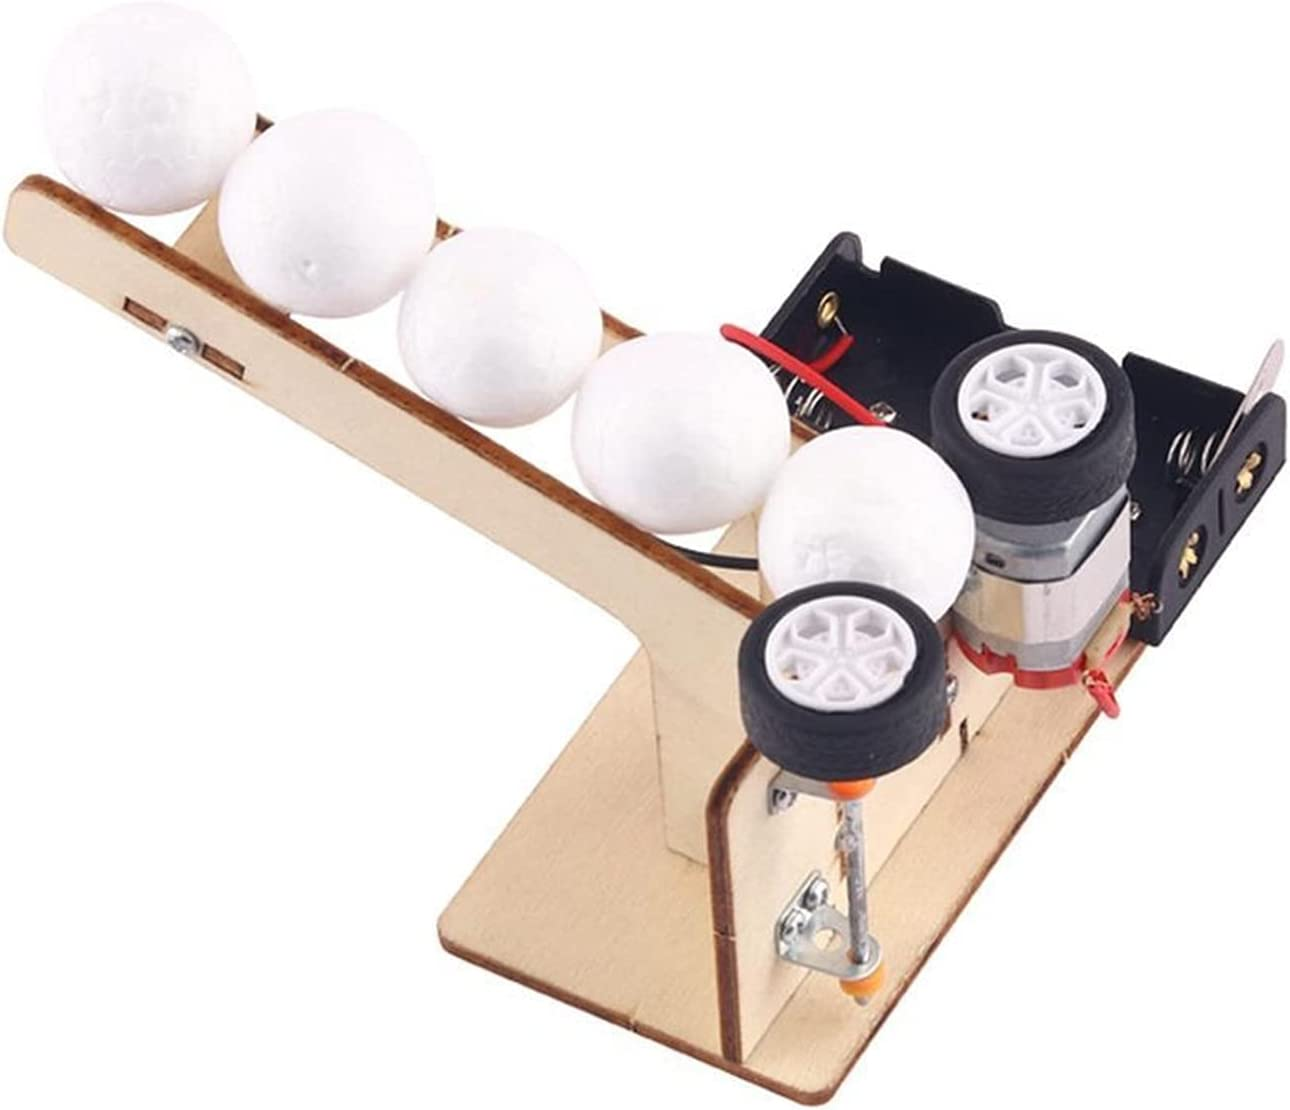 DIY Physics Experiment Model Kit Pitching Ball Rapid rise Electric M Ranking integrated 1st place Wooden